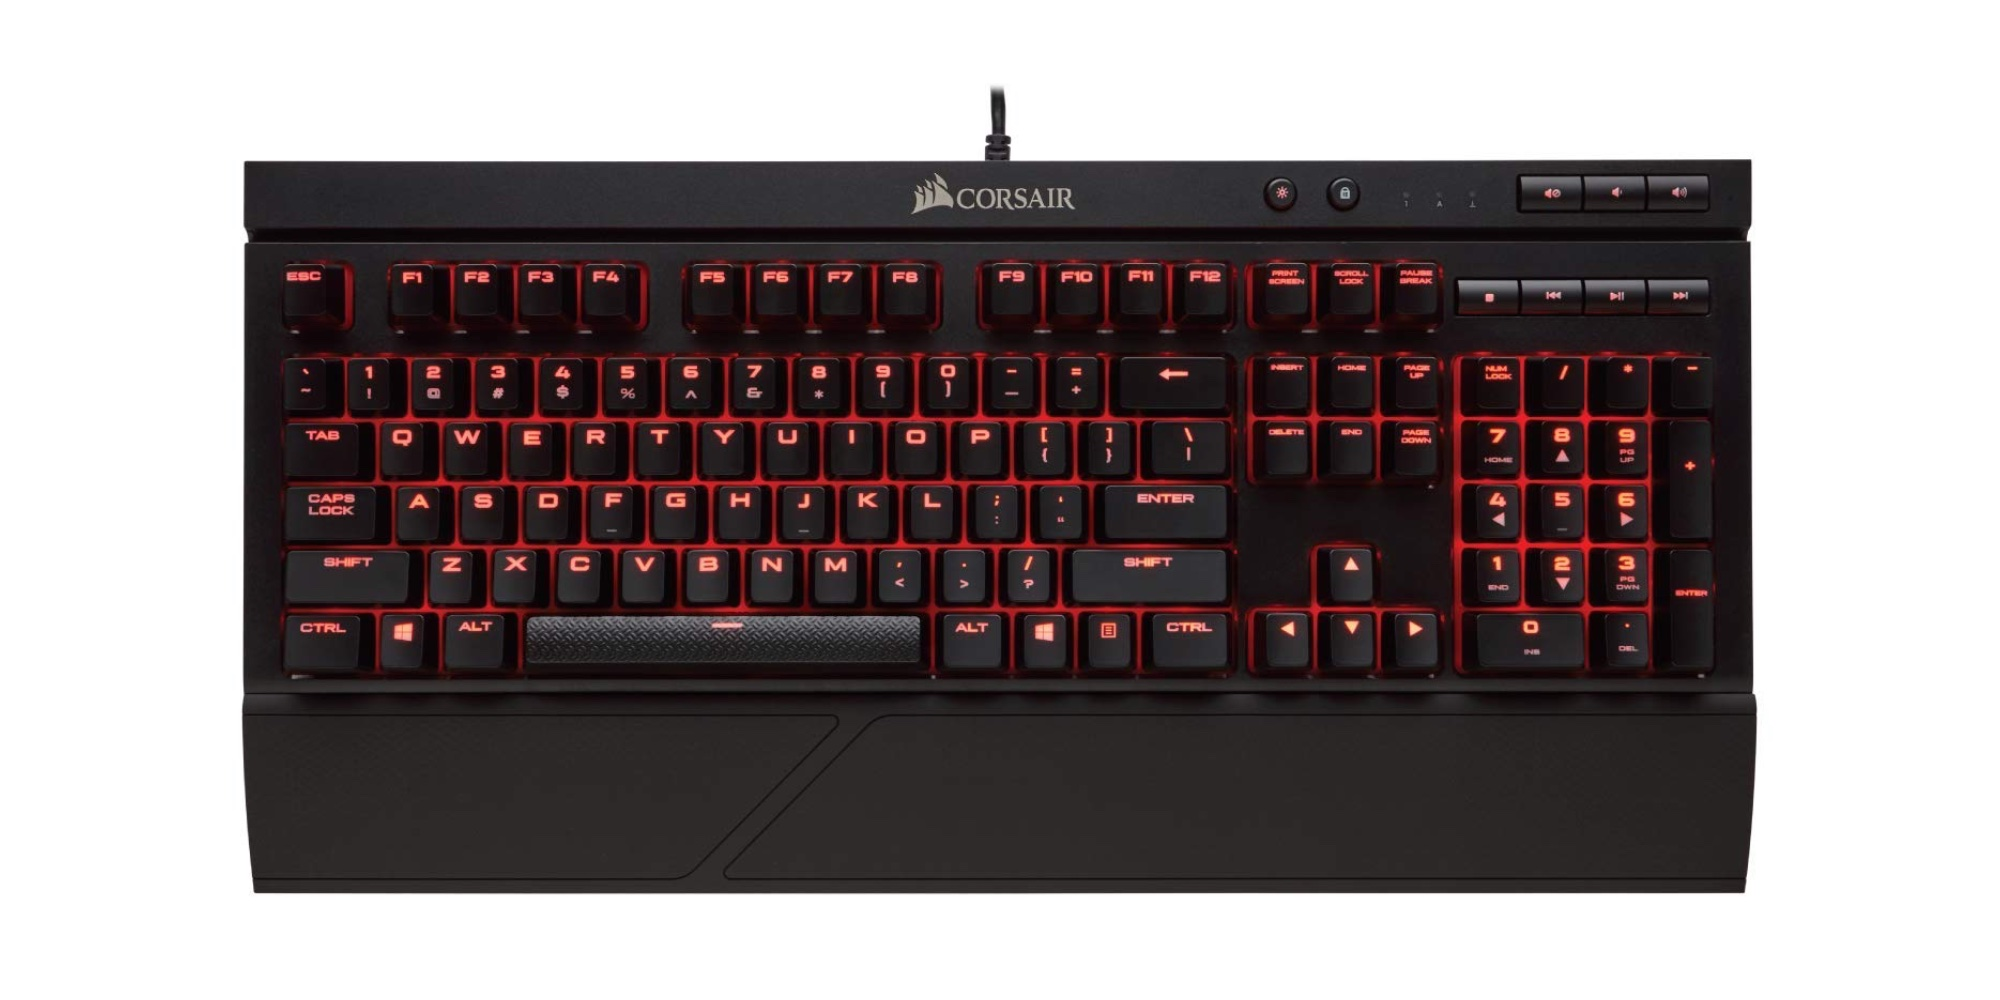 CORSAIR's K68 Mechanical Keyboard drops to new Amazon all-time low at $65 (Reg. $90)